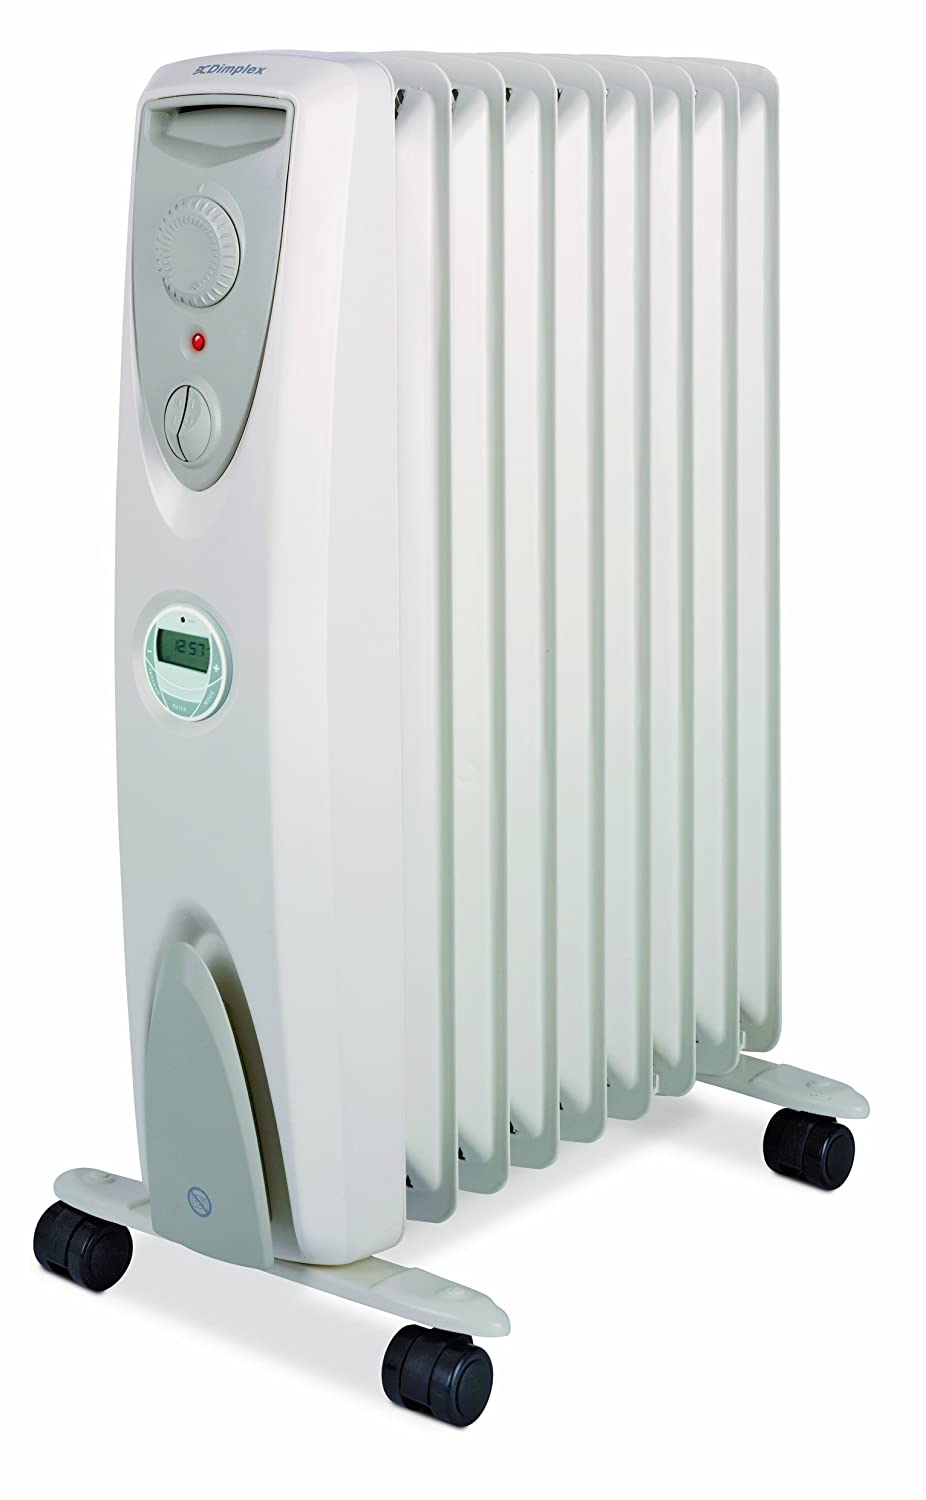 Dimplex OFRC20TIC Electric Oil Free Column Heater with Timer, 2 Kilowatt Heating Solutions Portable Heaters Home_Environment Oil Filled Radiator